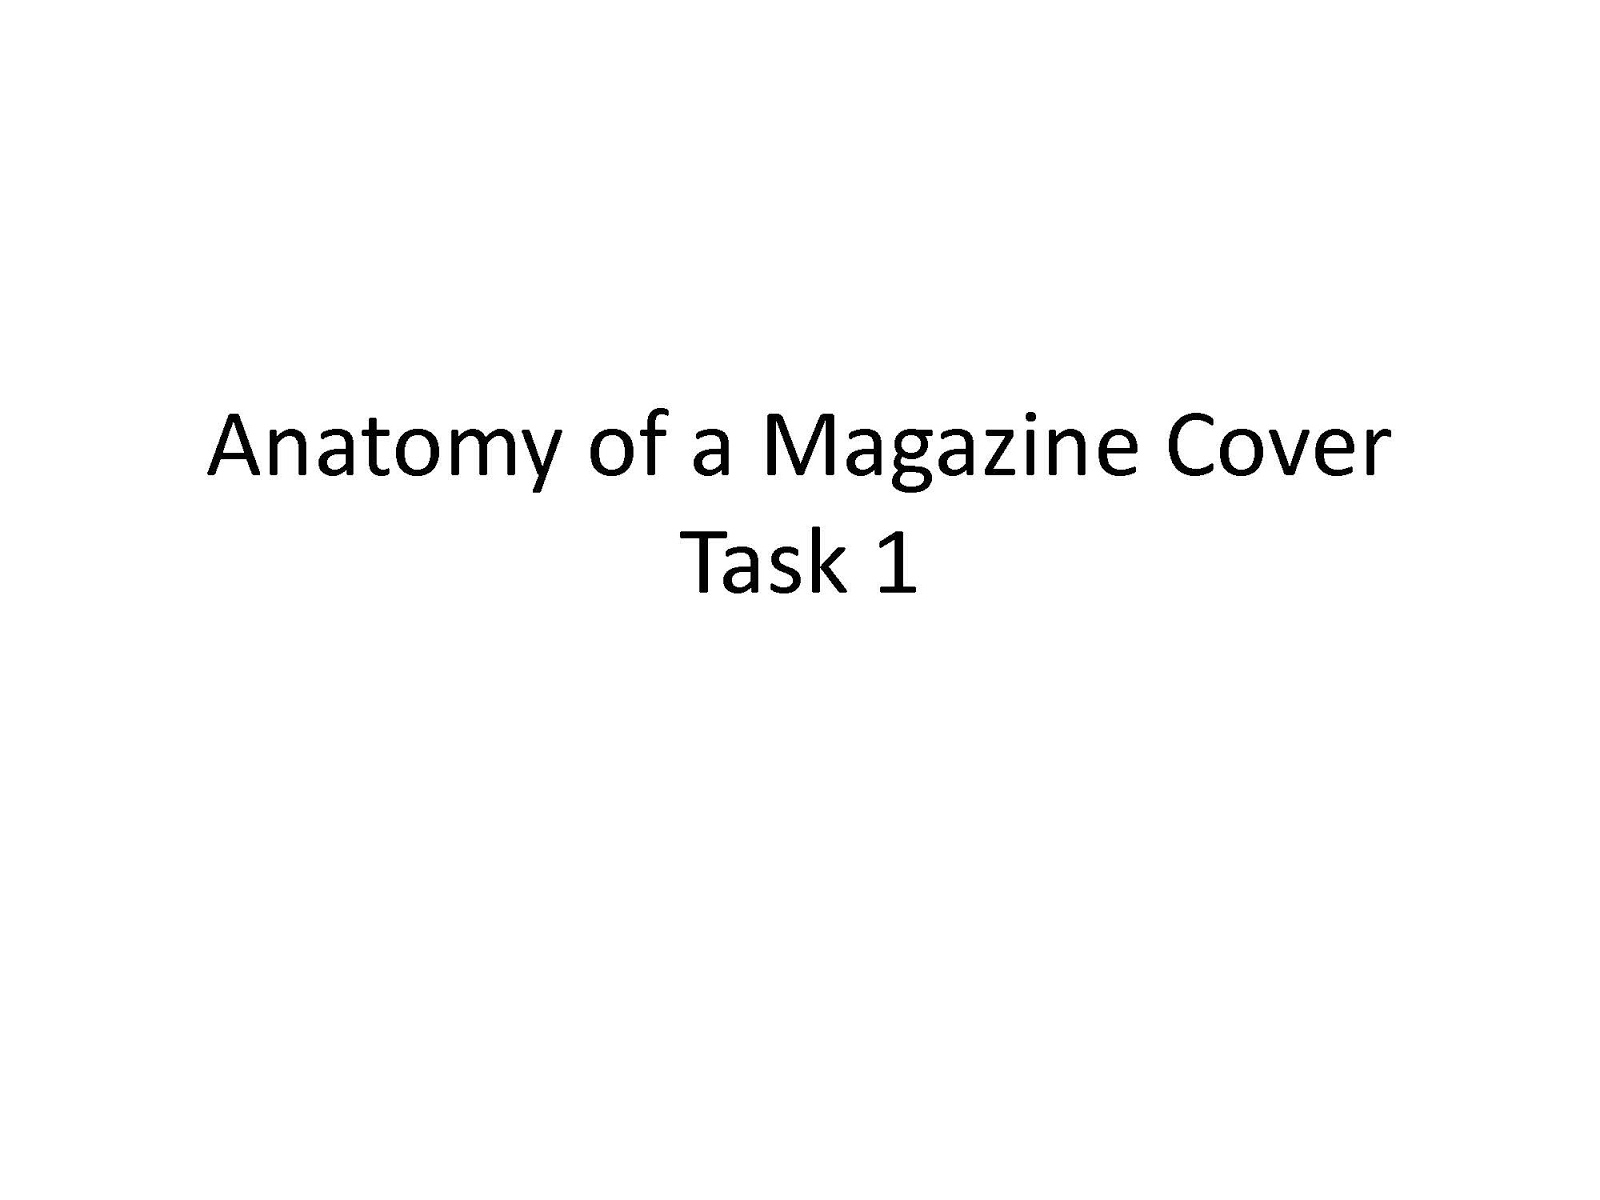 Jake\'s AS Media: Anatomy of a Magazine Cover Task 1